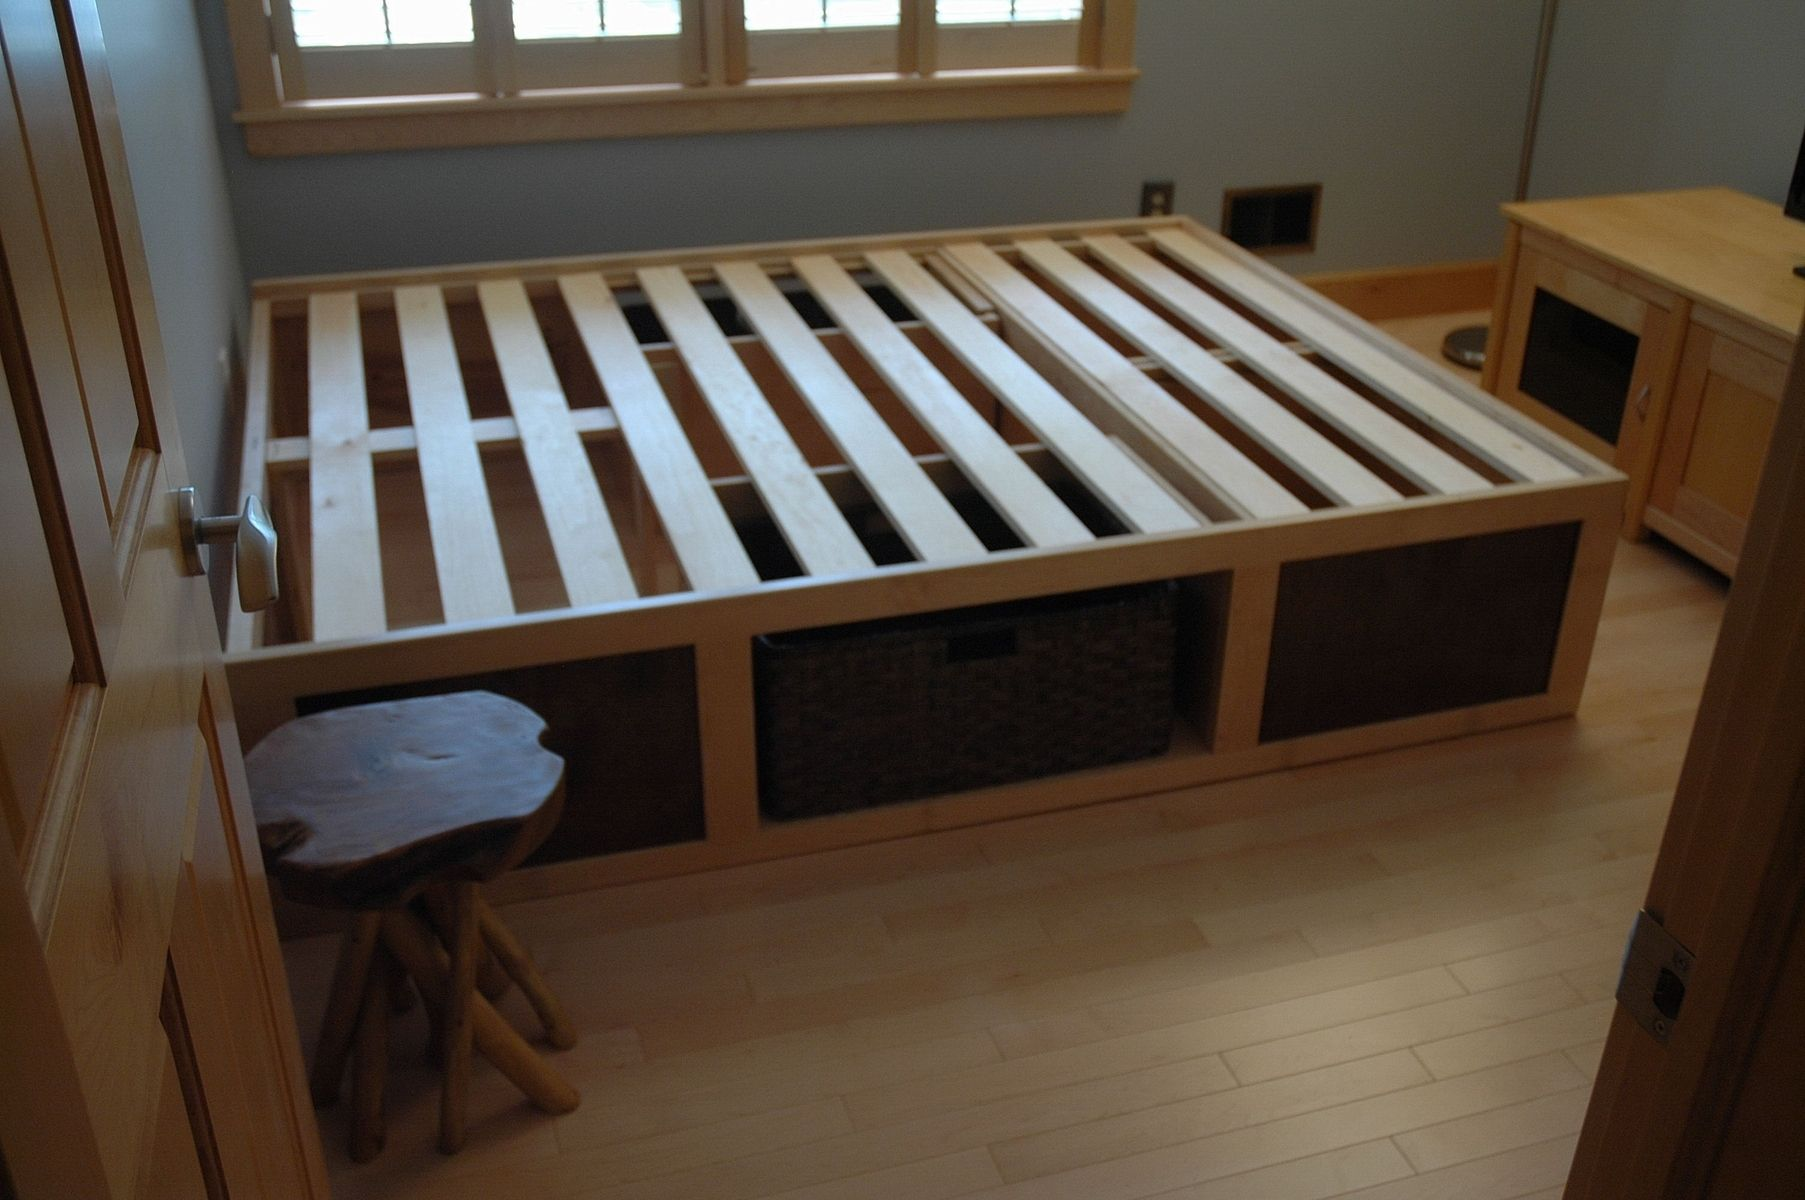 60 Quot X 80 Quot Platform Bed With Storage Baskets Diy Amp Crafts